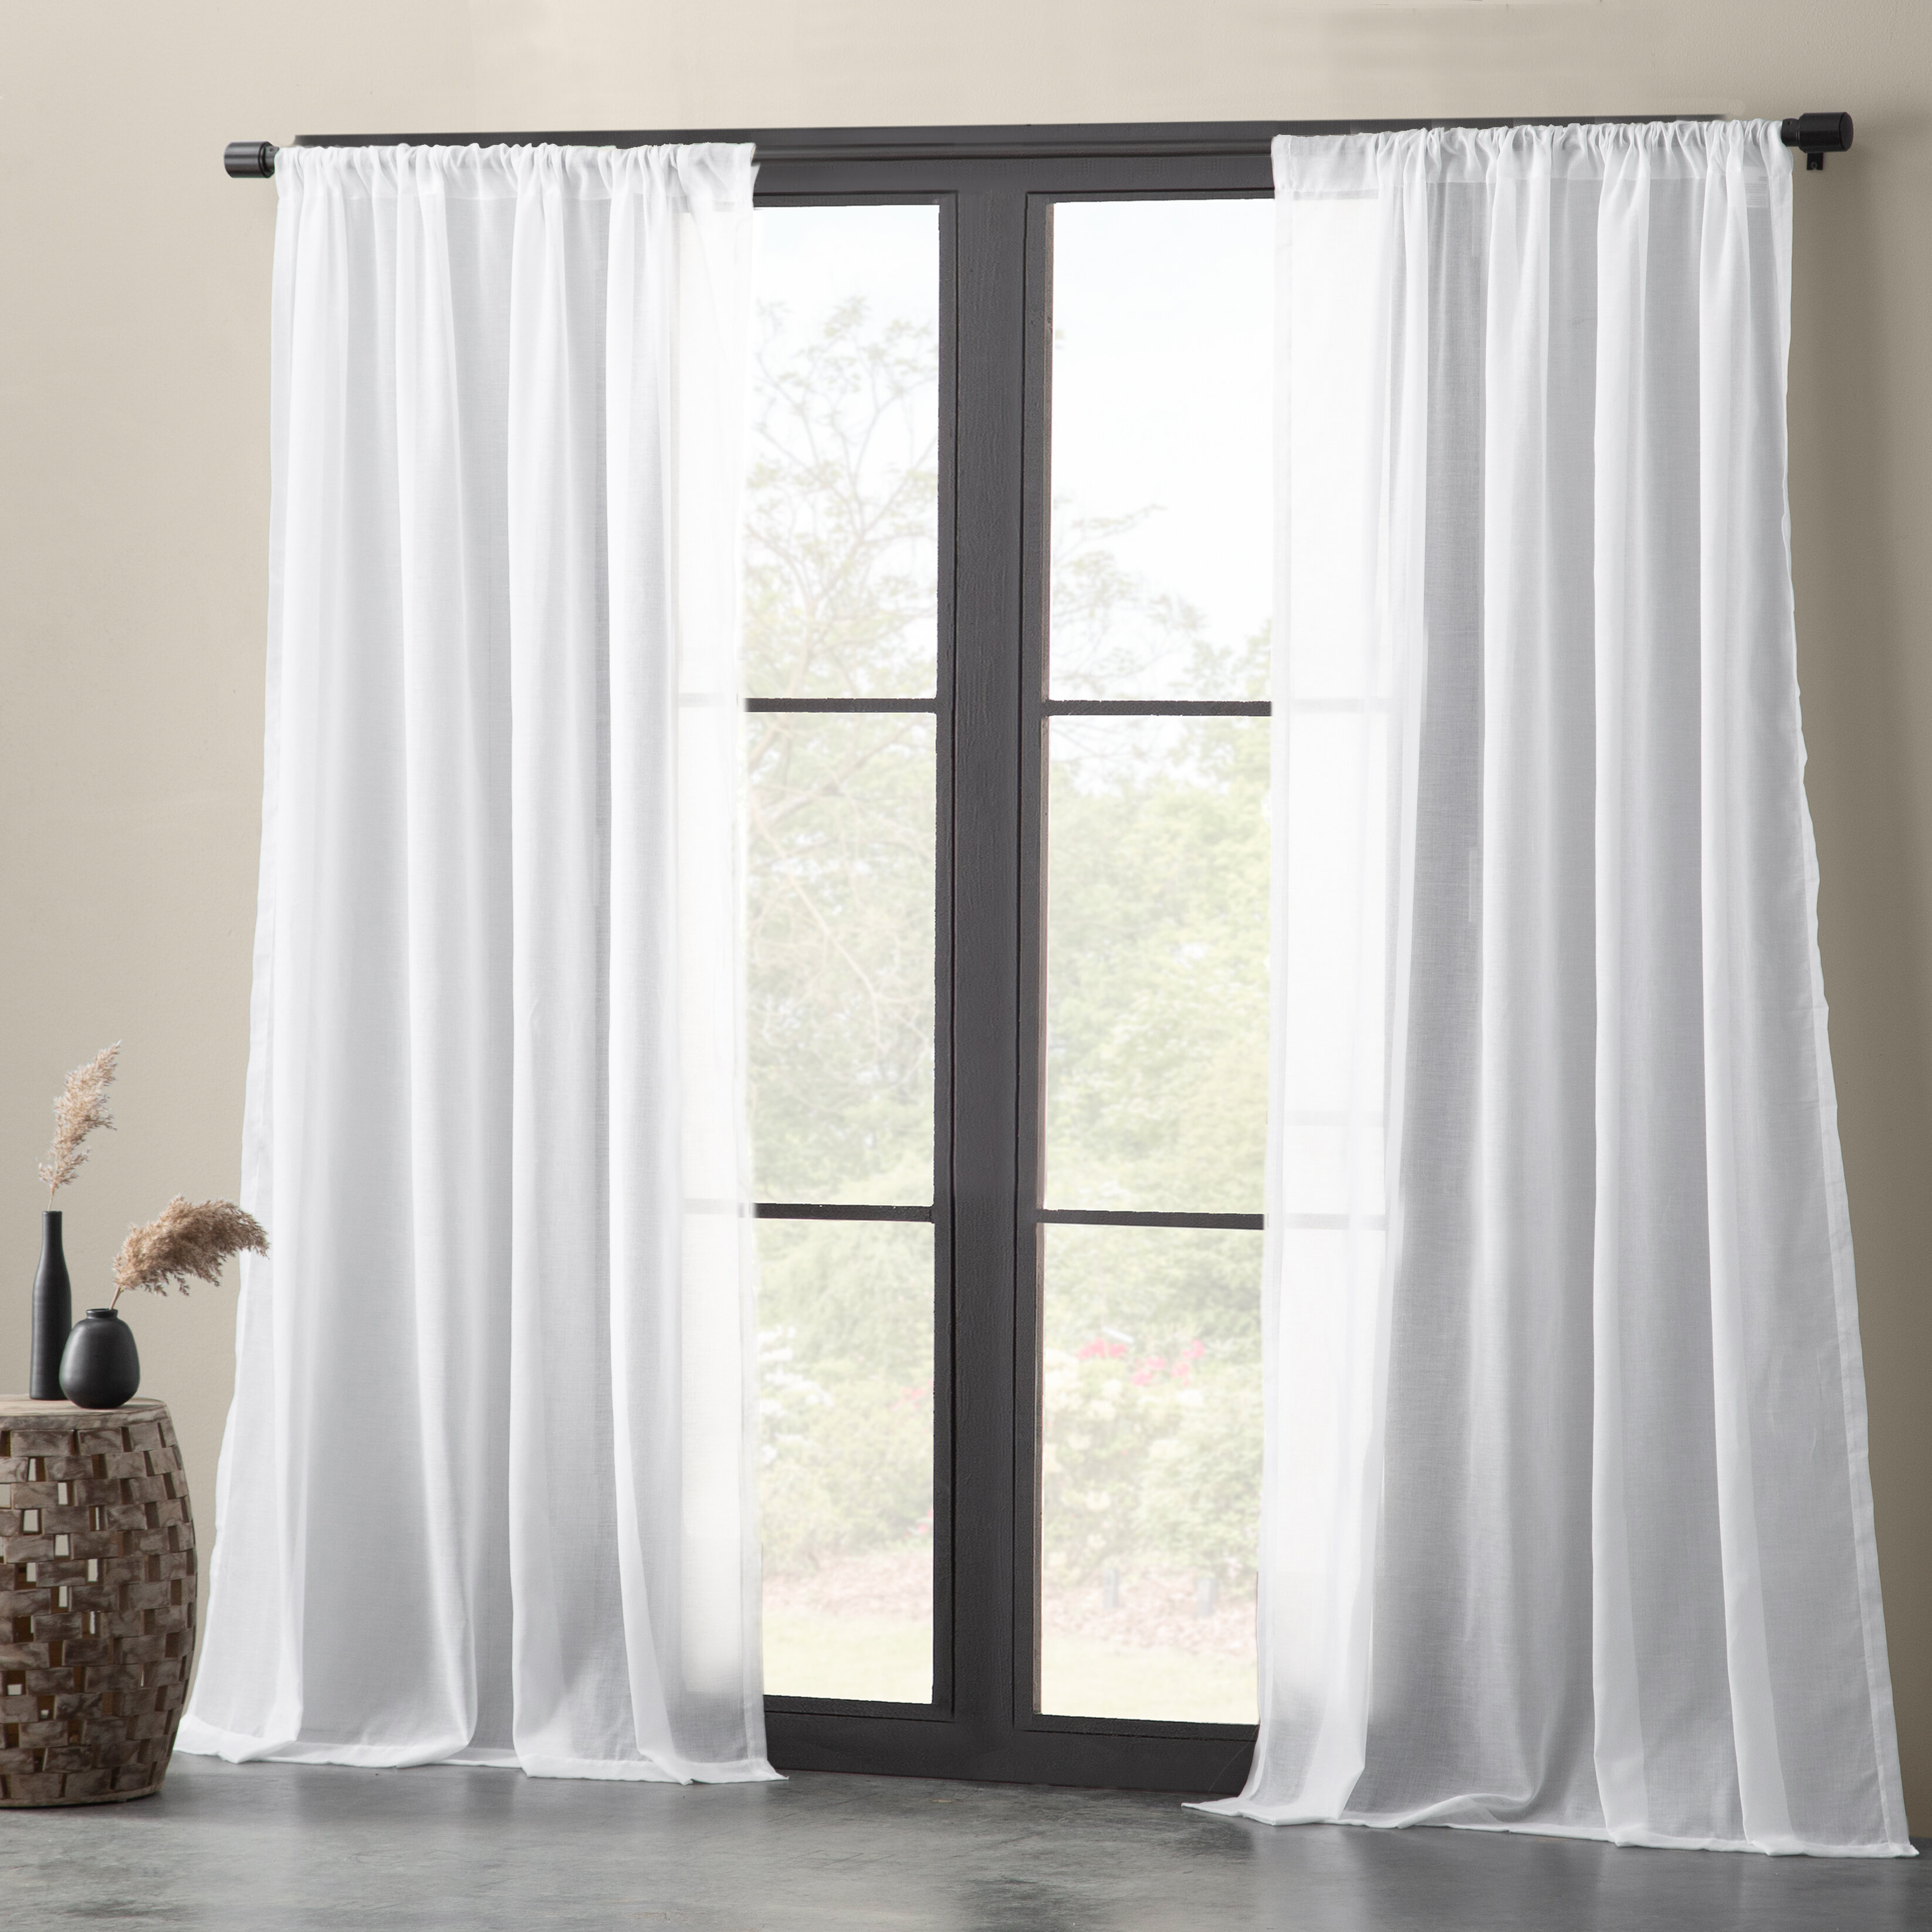 Nolan Cotton Blend Textured Weave Solid Sheer Rod Pocket Single Curtain Panel Pertaining To Solid Cotton Curtain Panels (View 27 of 30)